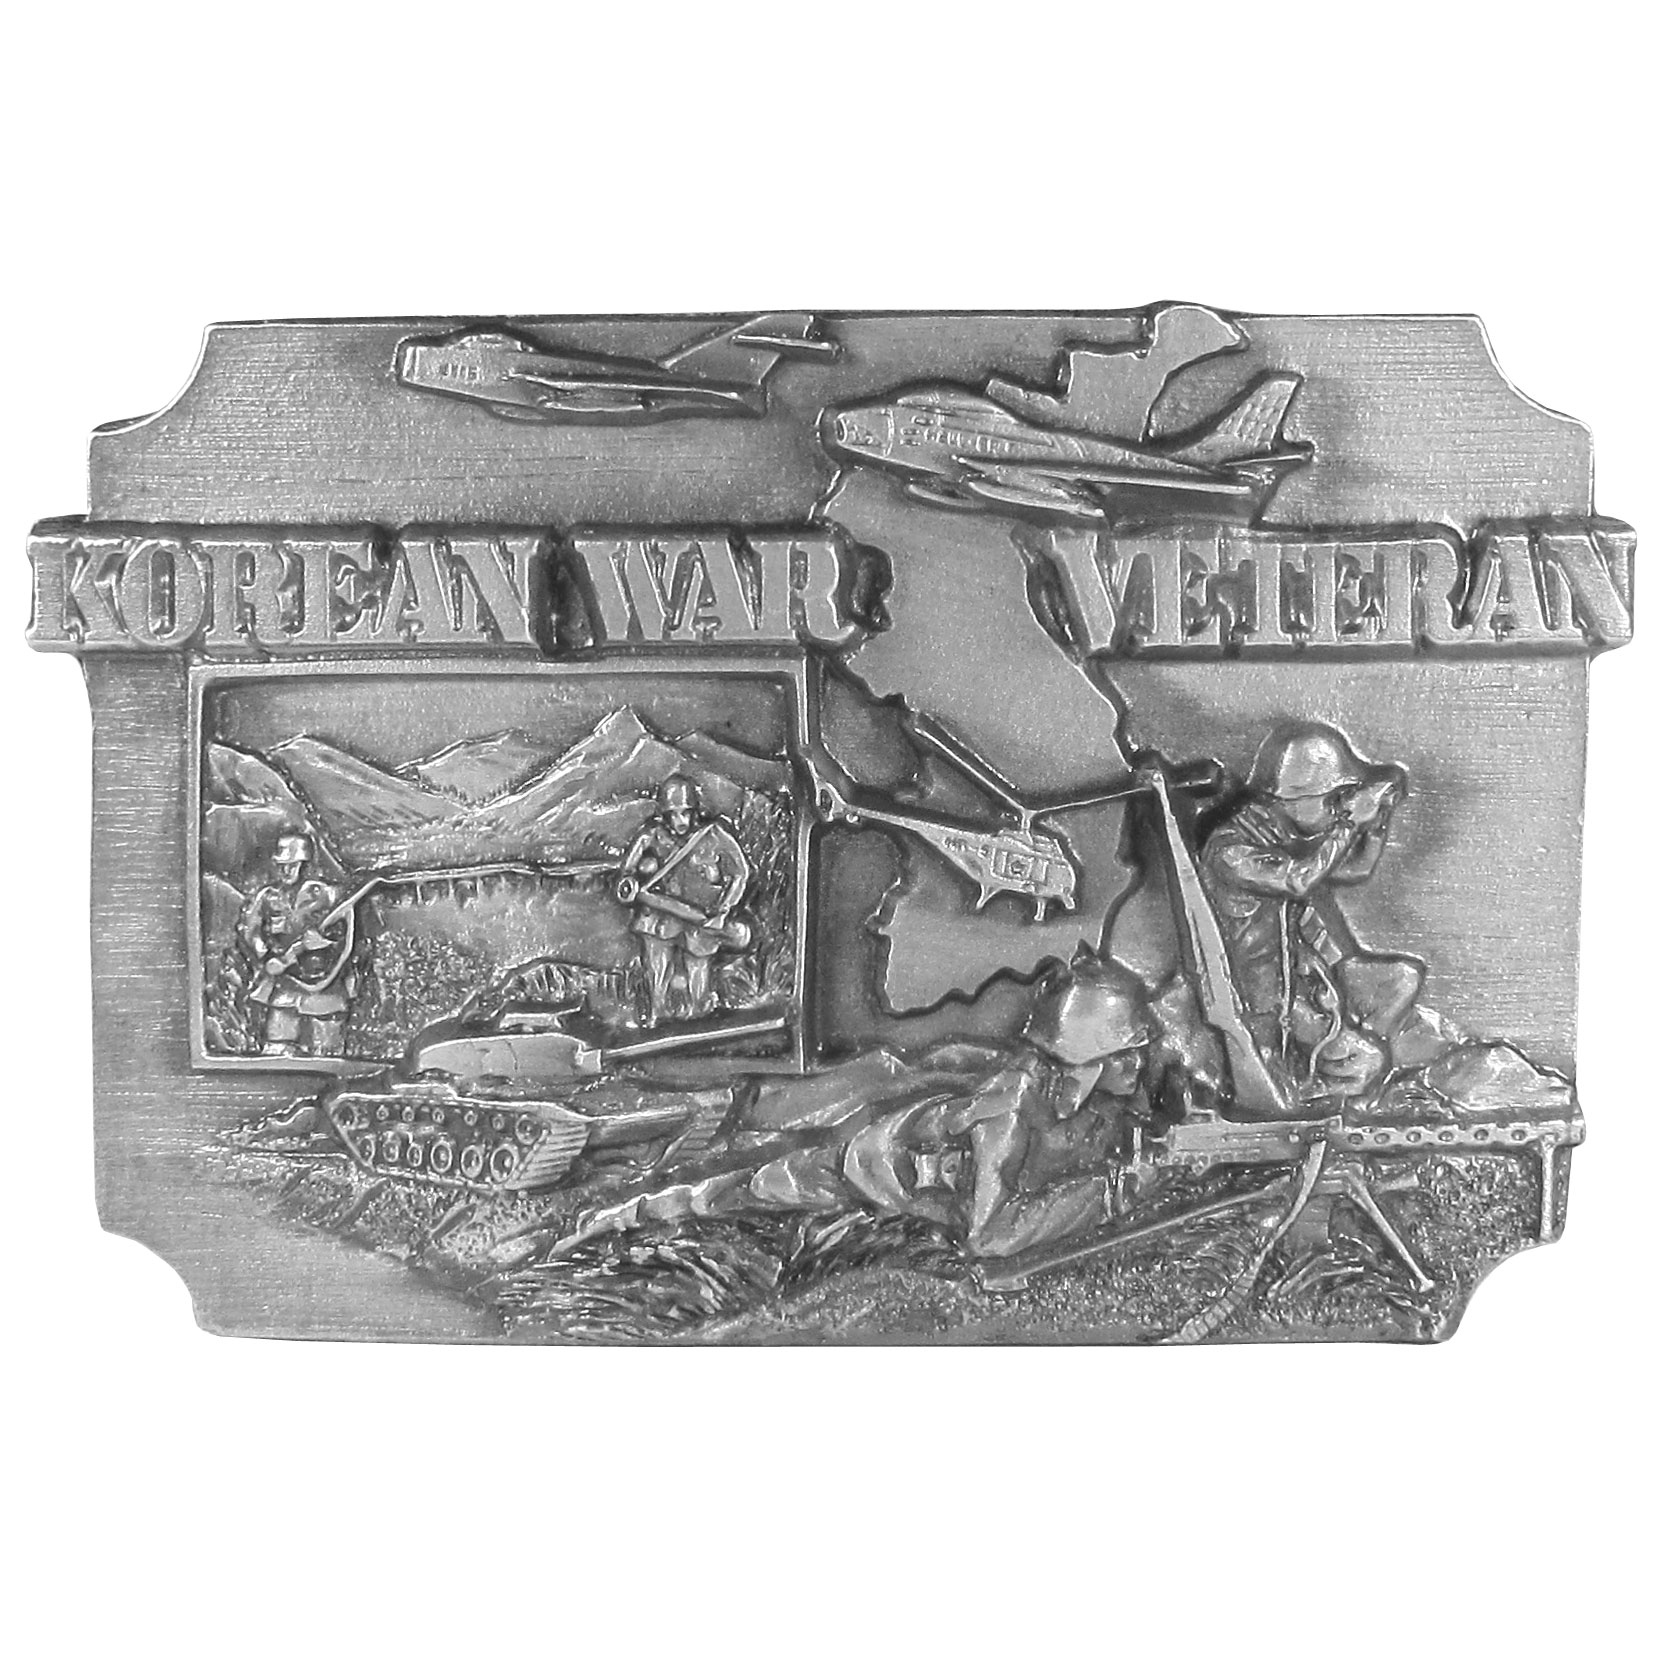 "Korean War Veteran Antiqued Belt Buckle - ""This belt buckle is for the Korean war veteran! The belt buckle features armed forces, planes, a helicopter, a tank and the outline of Korea, as well at the words """"Korean War Veteran"""". On the back are the words, """"The Korea War began June 25, 1950 and ended July 27, 1953."""" This exquisitely carved buckle is made of fully cast metal with a standard bale that fits up to 2"""" belts."""